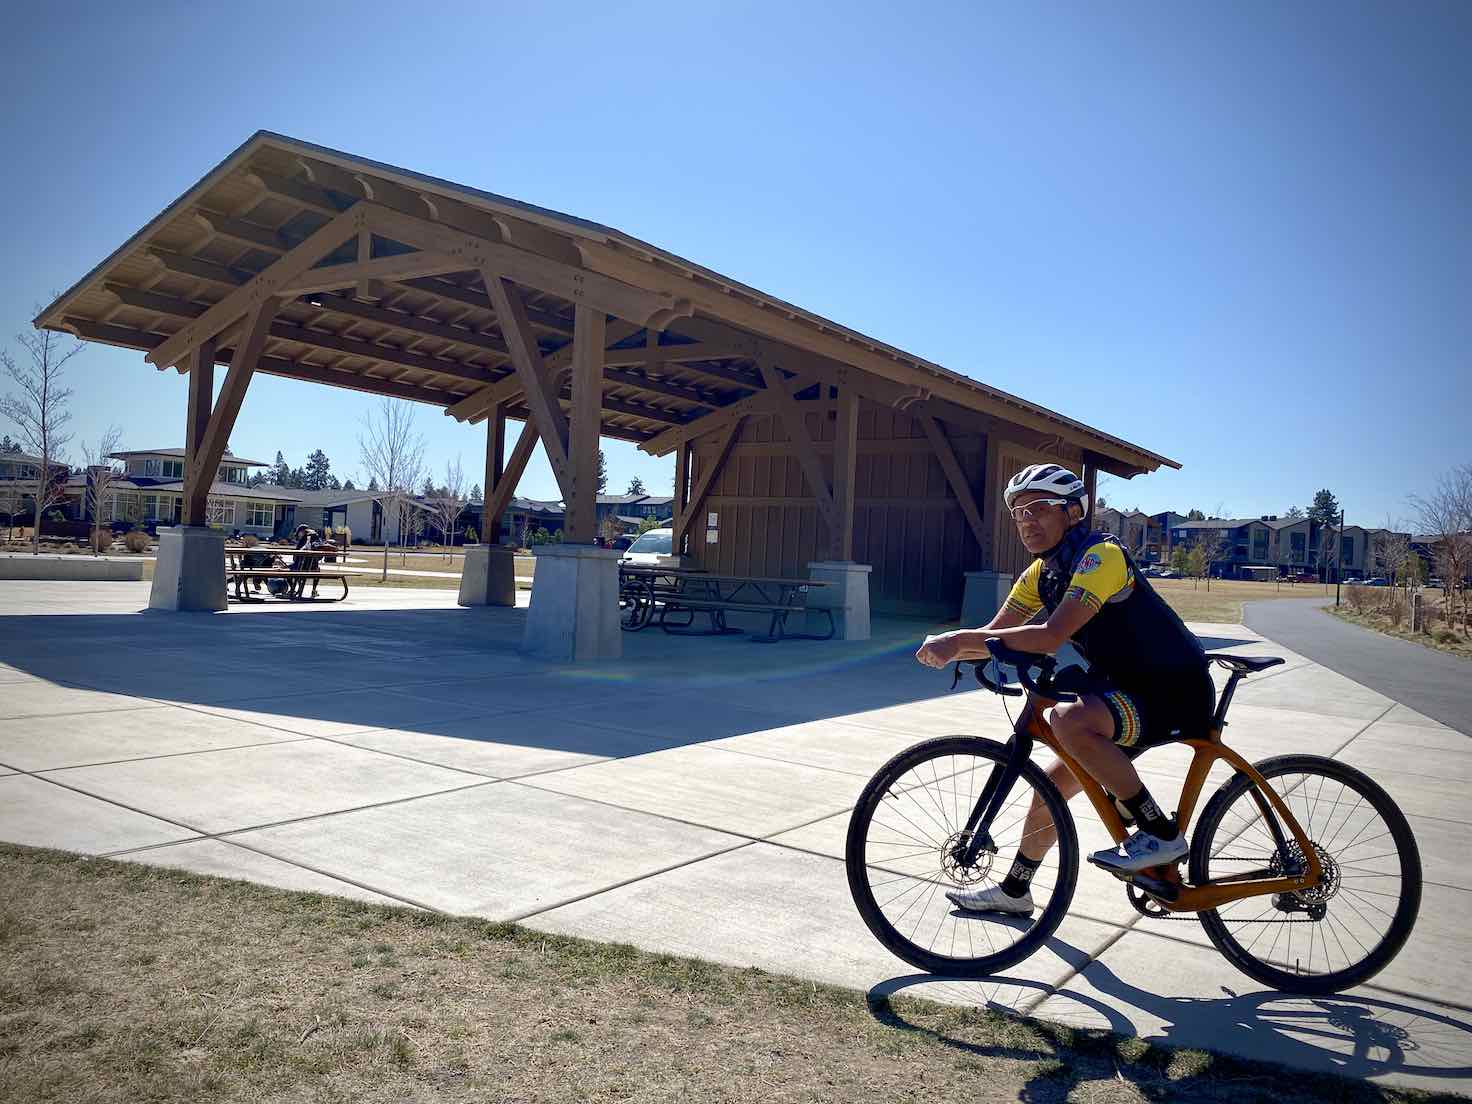 Bike rider at the Discovery Park Pavillion in Bend, Oregon.